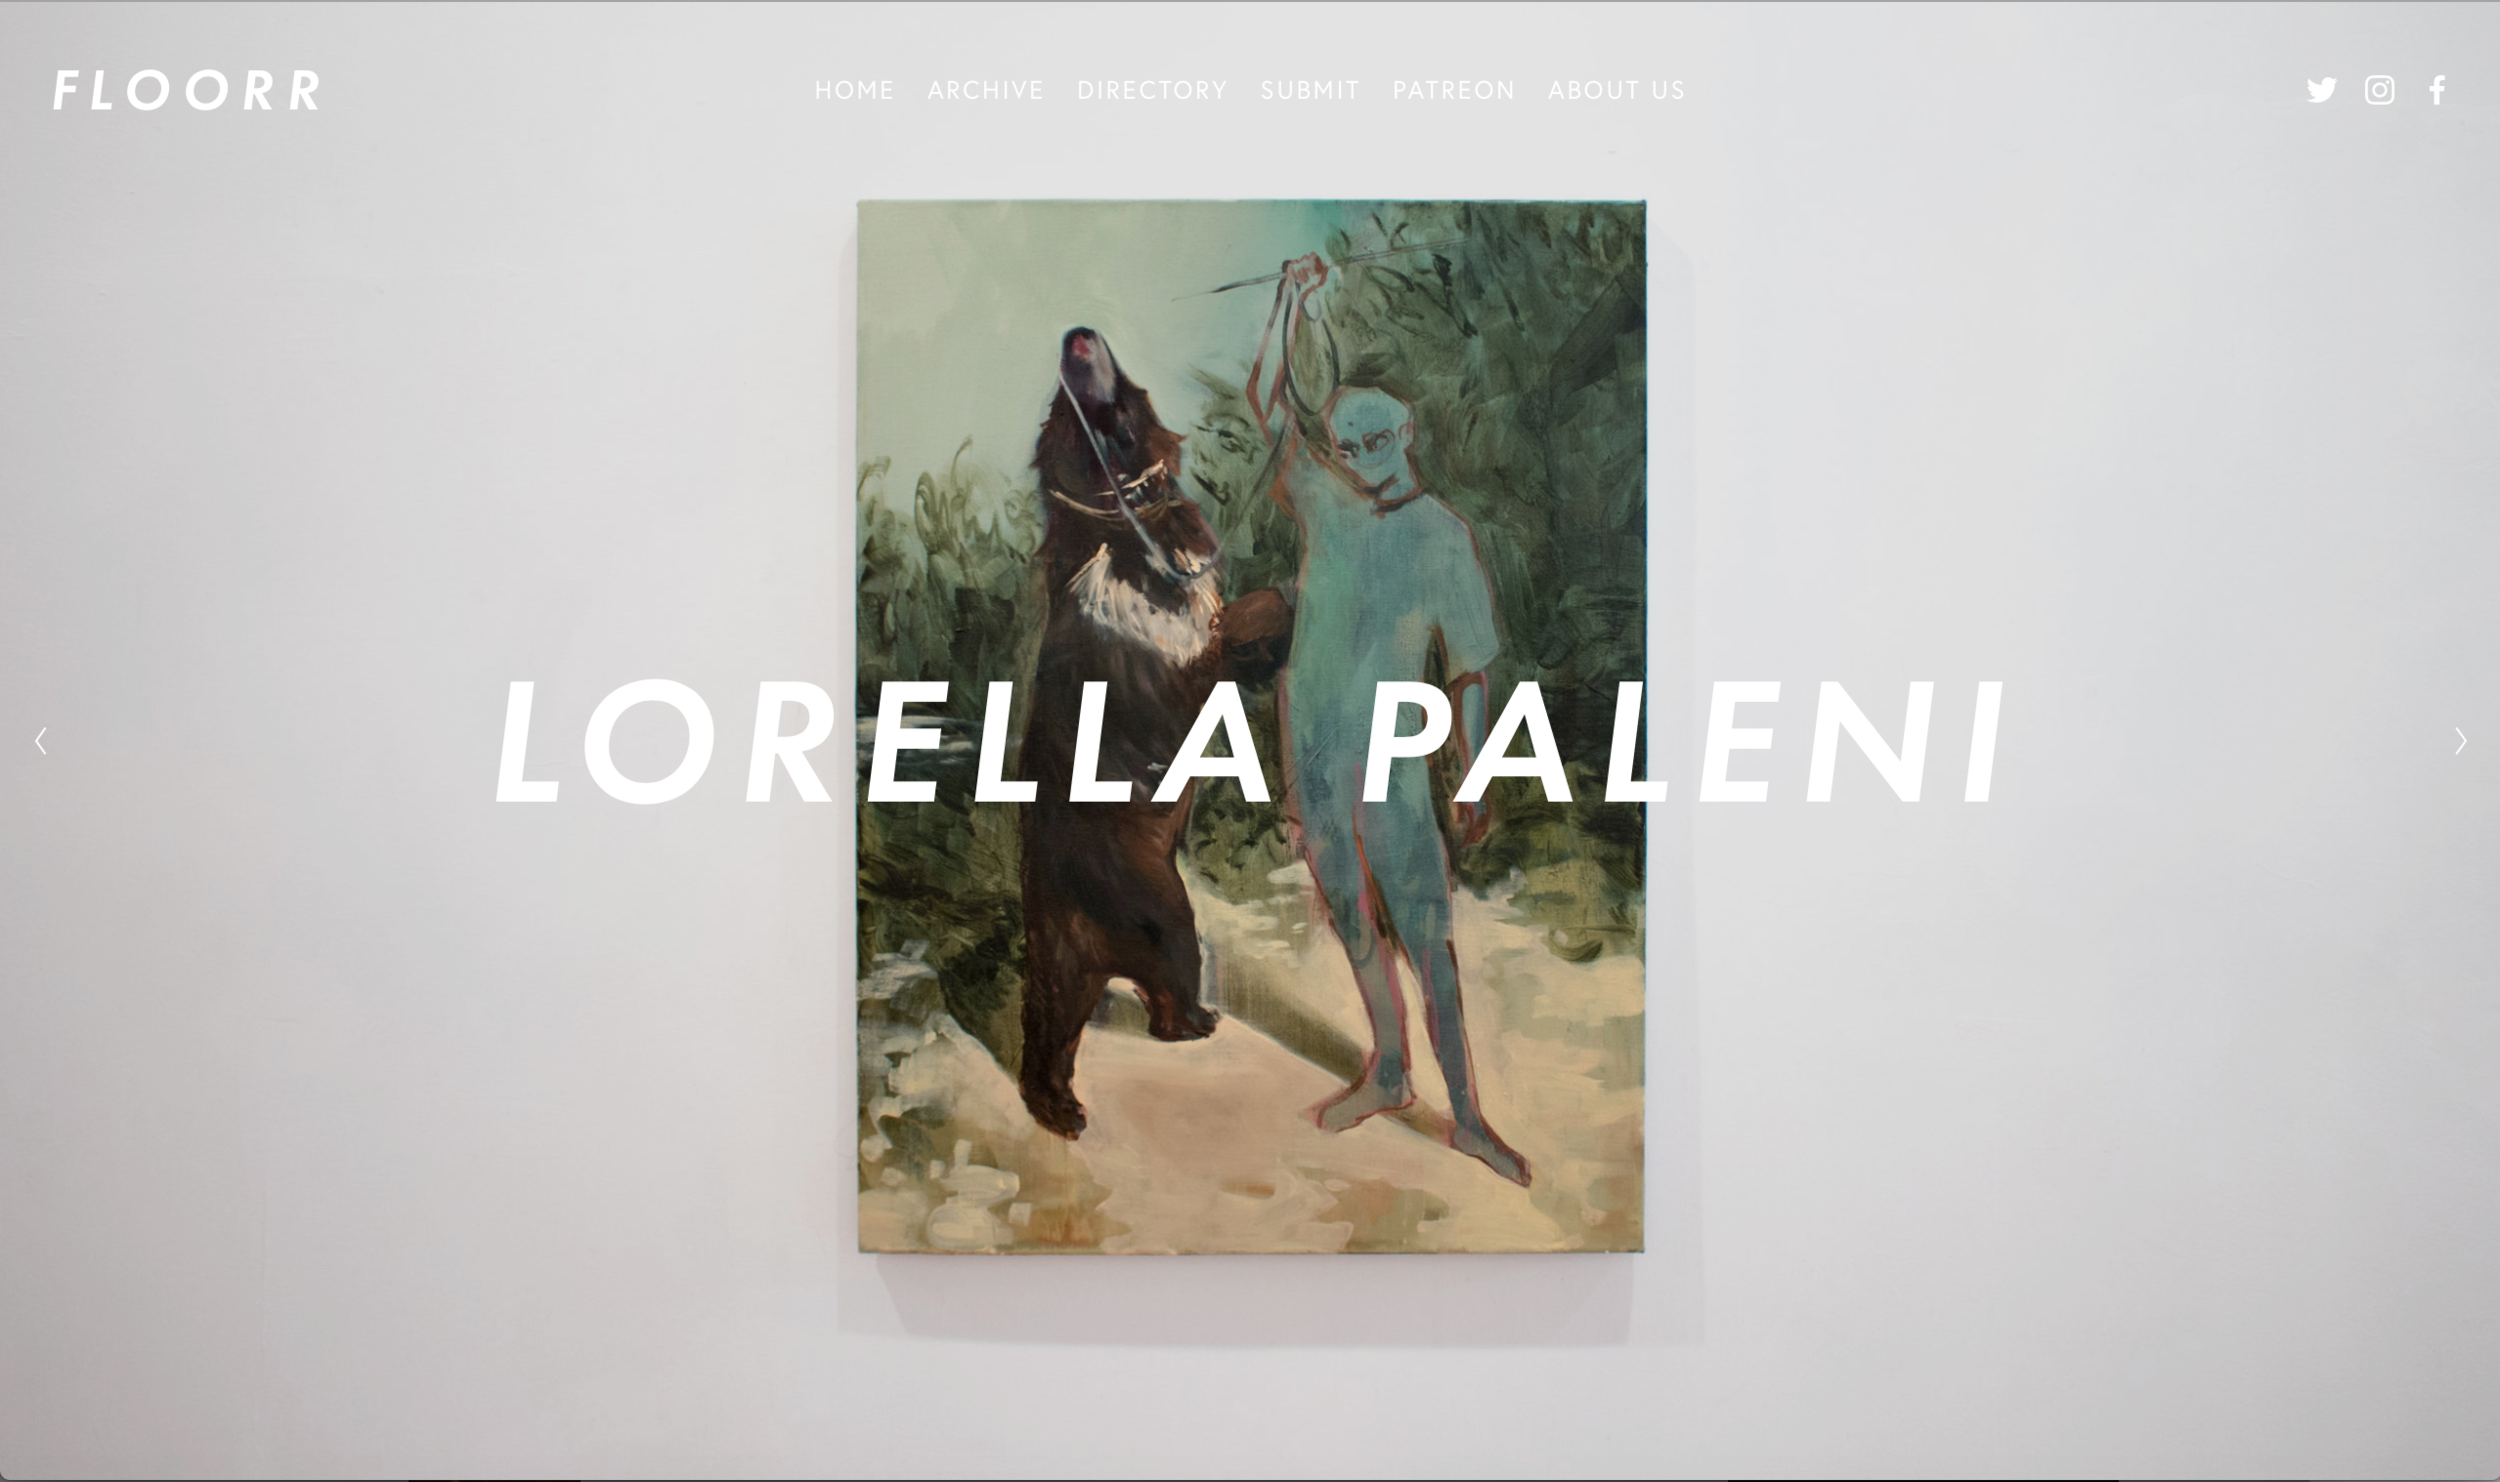 View full interview at https://www.floorrmagazine.com/issue-18/lorella-paleni